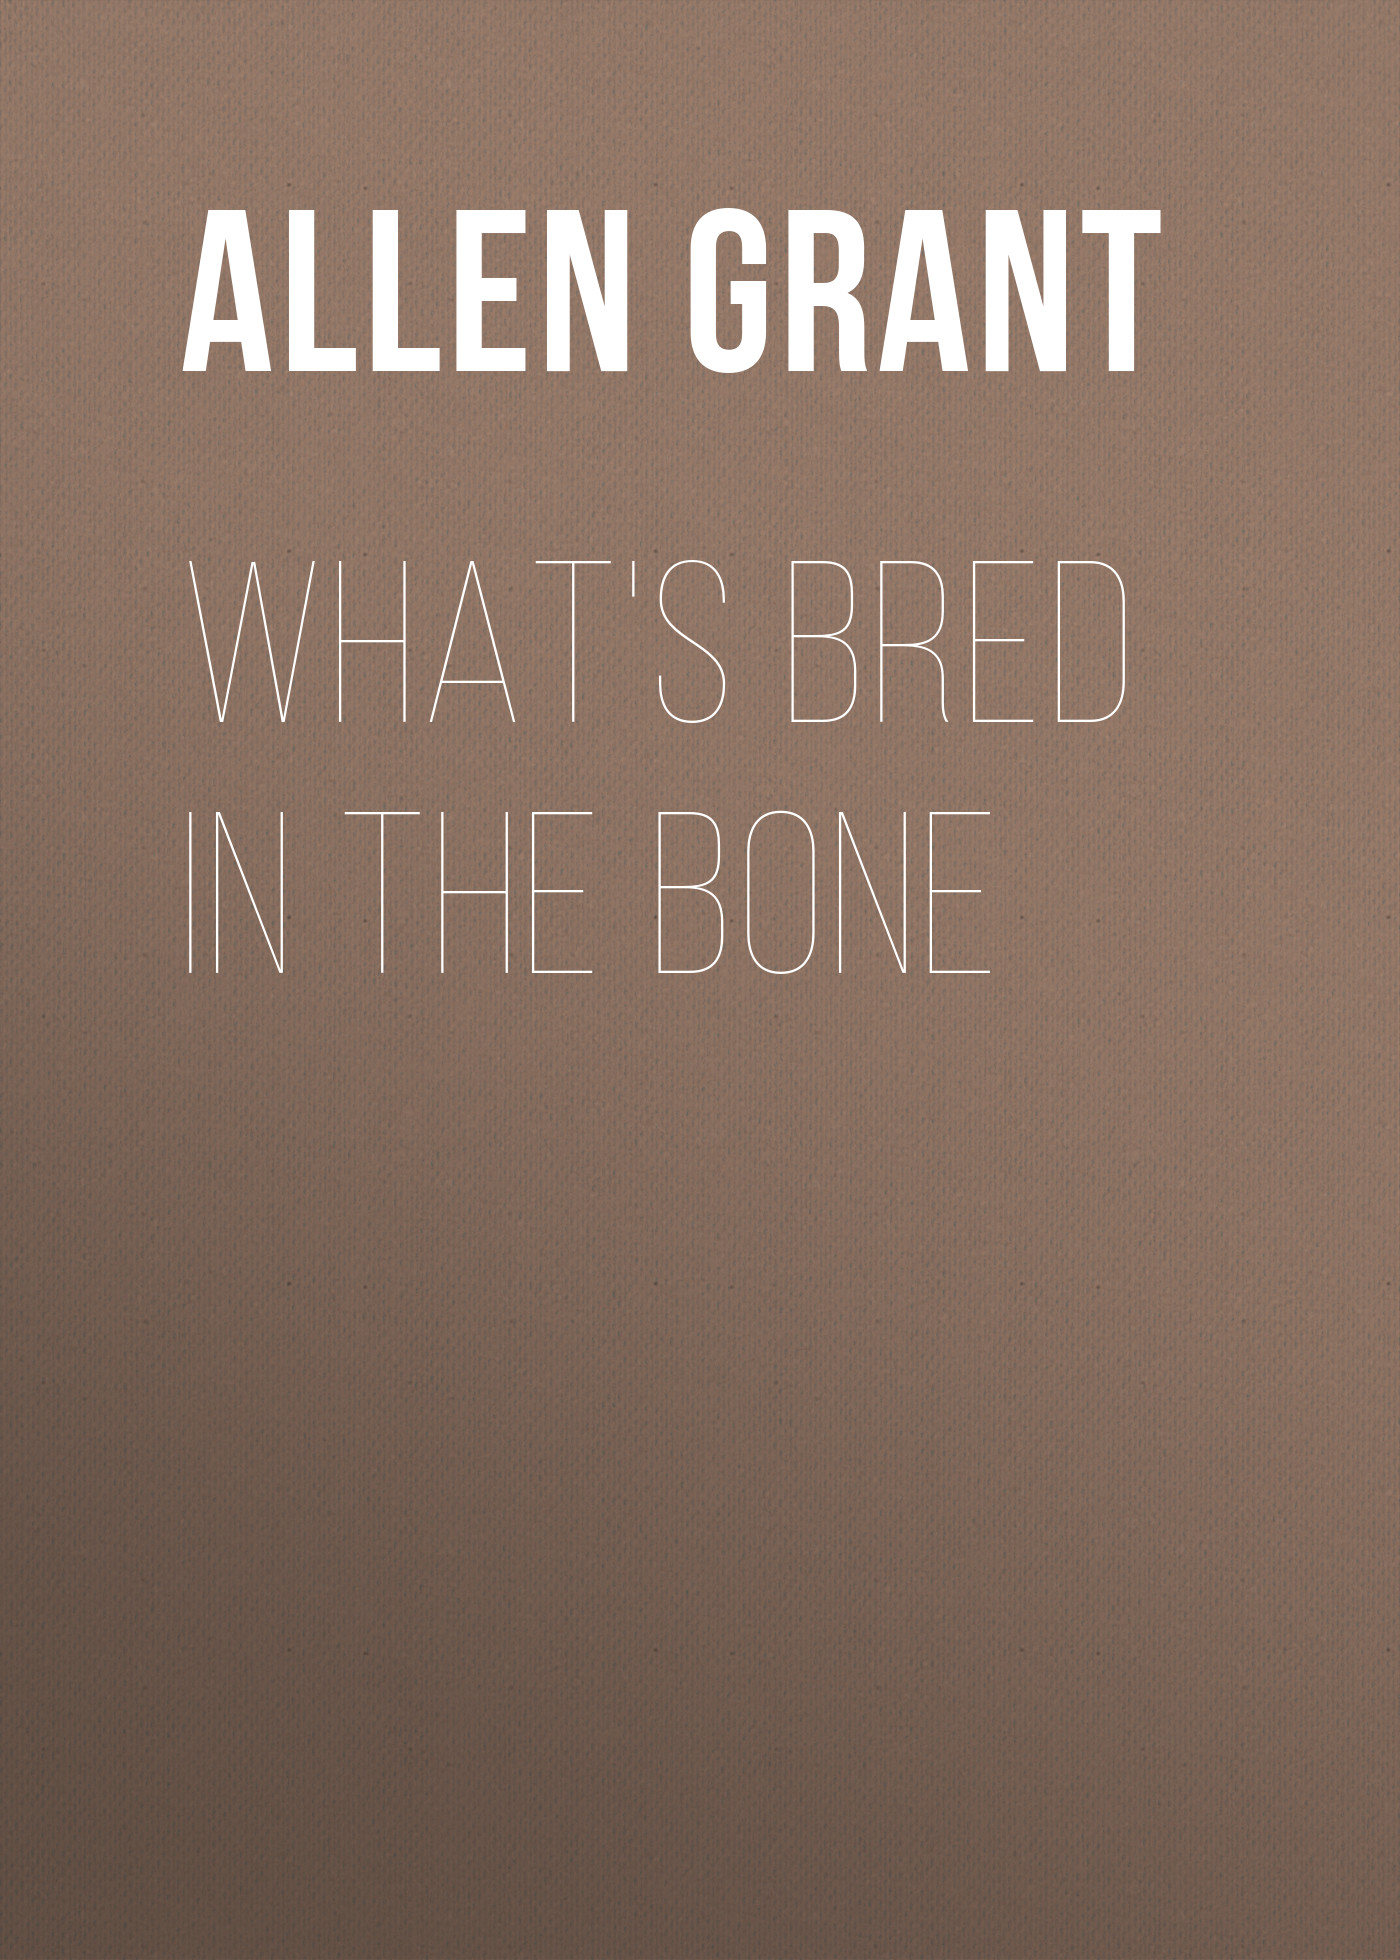 Allen Grant What's Bred in the Bone heterogeneity in matching grant effects